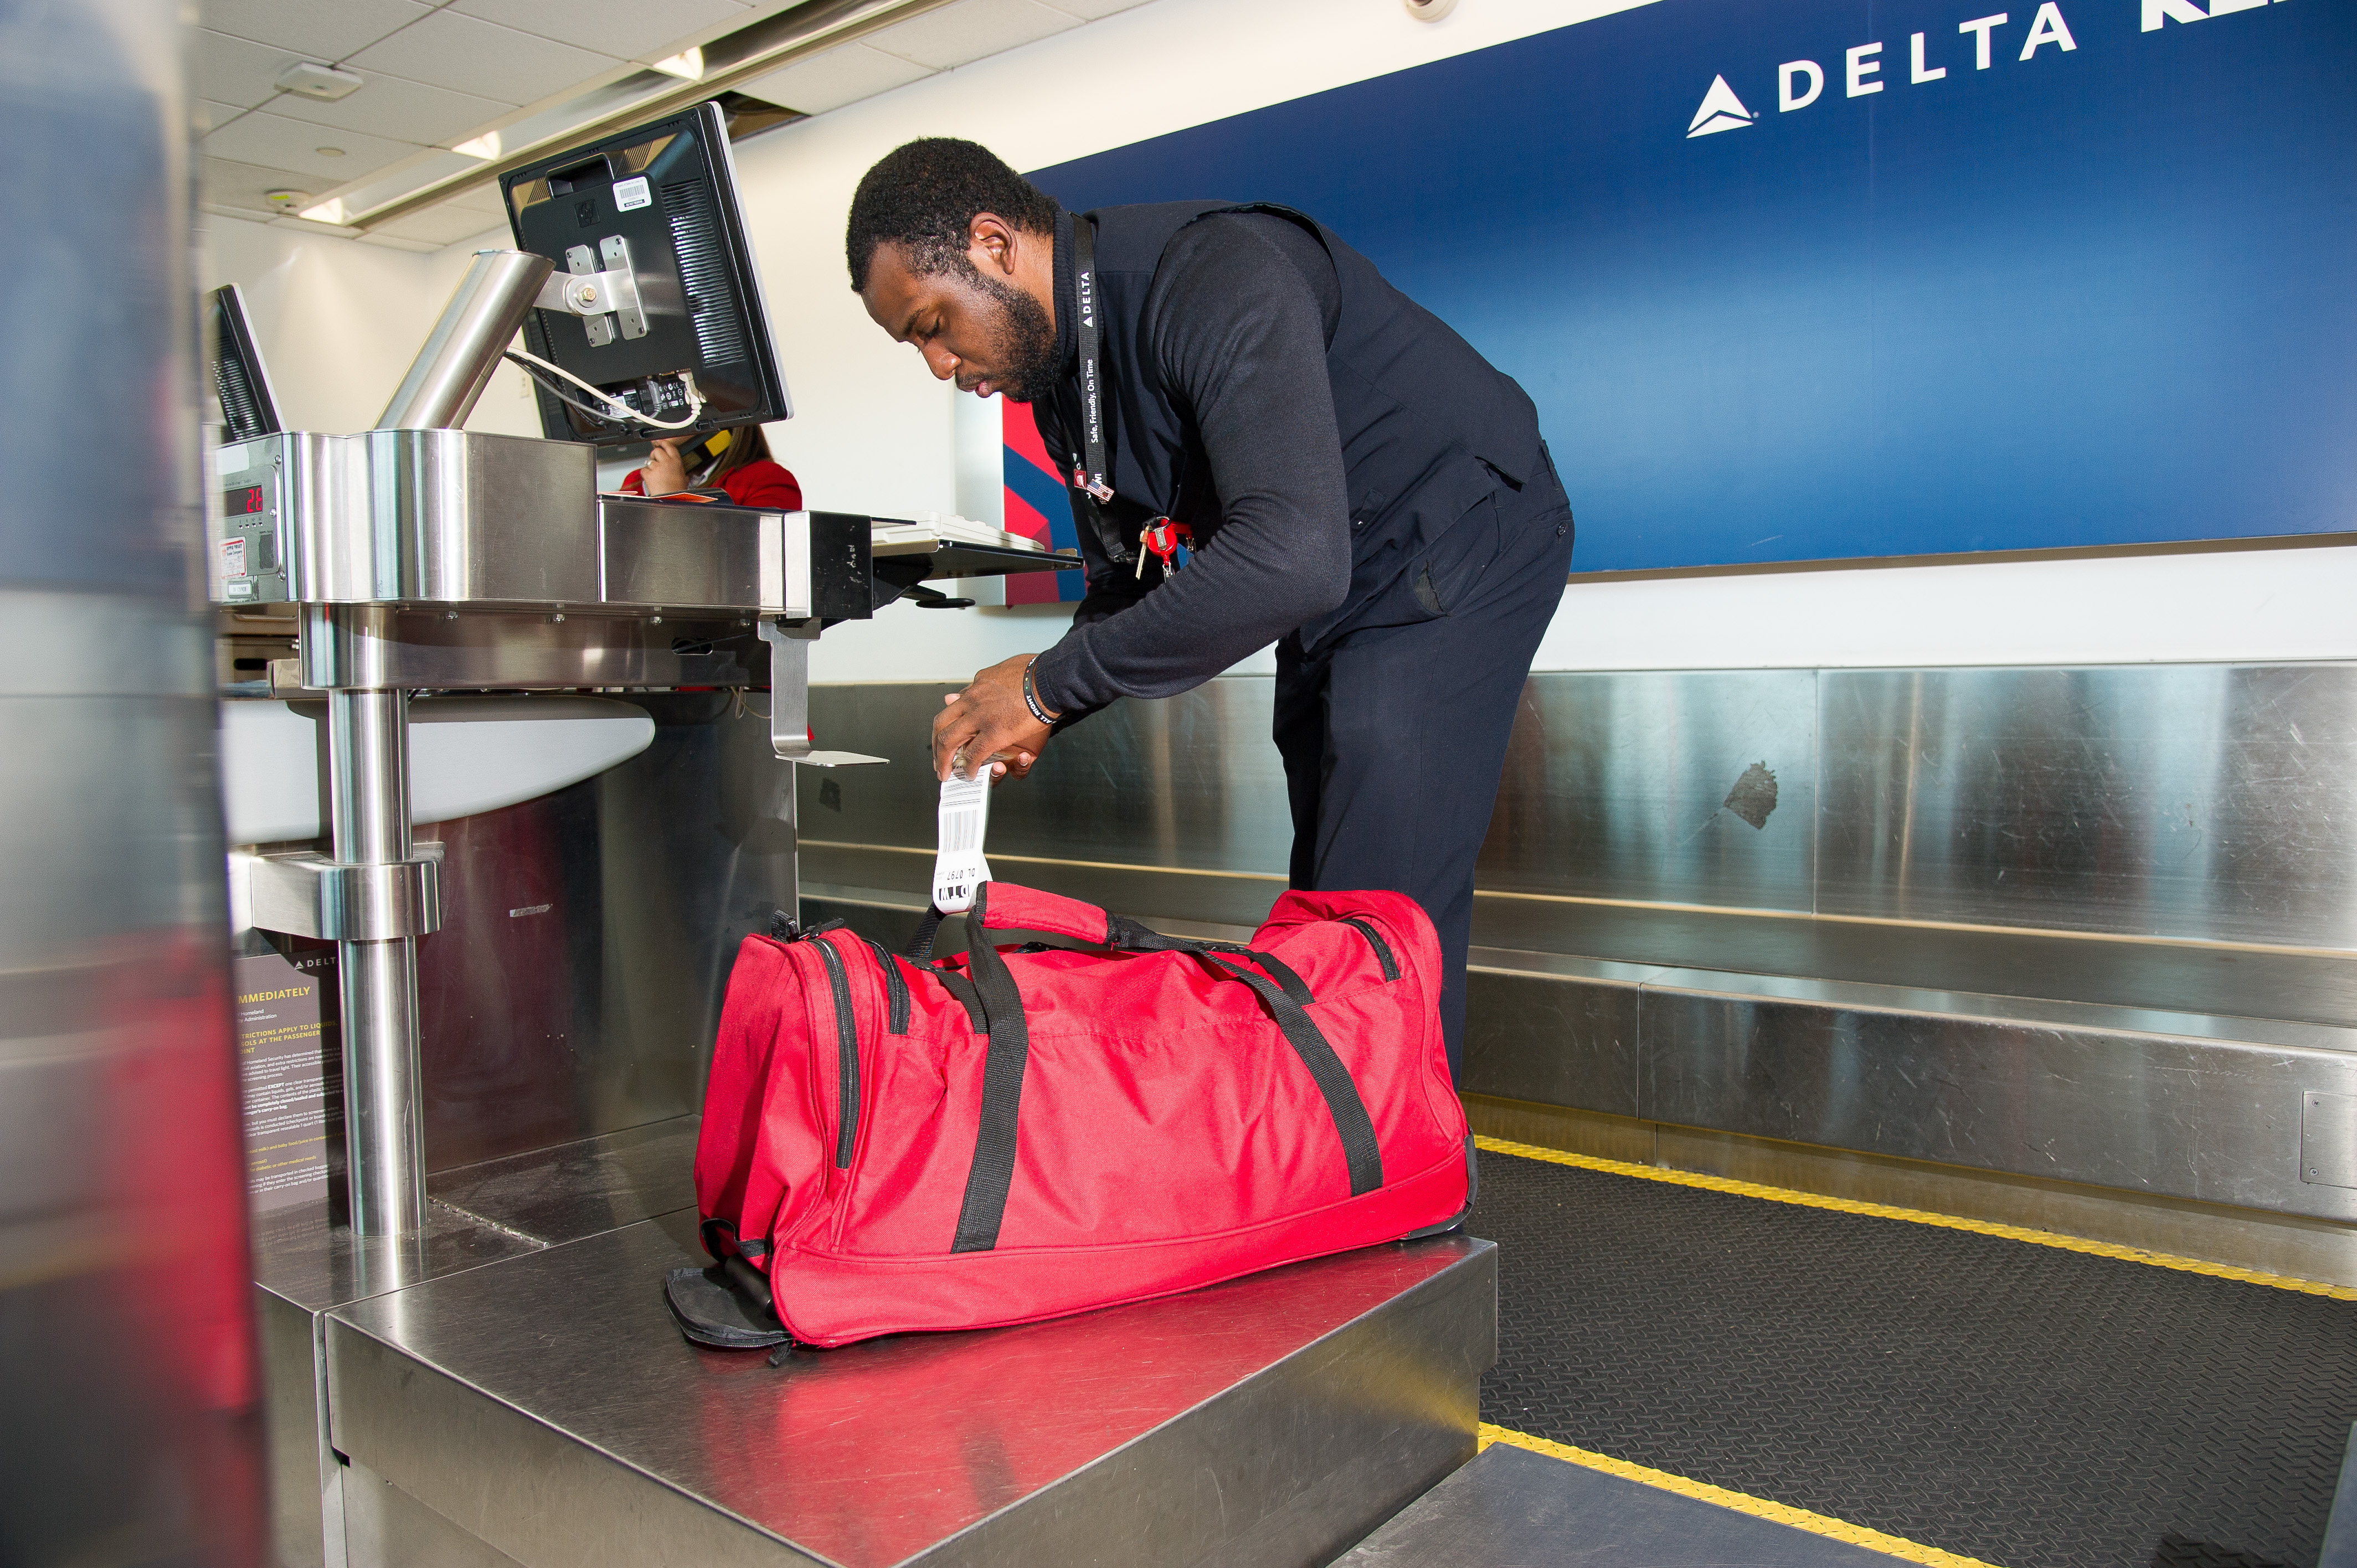 Delta introduces innovative baggage tracking process | Delta News Hub